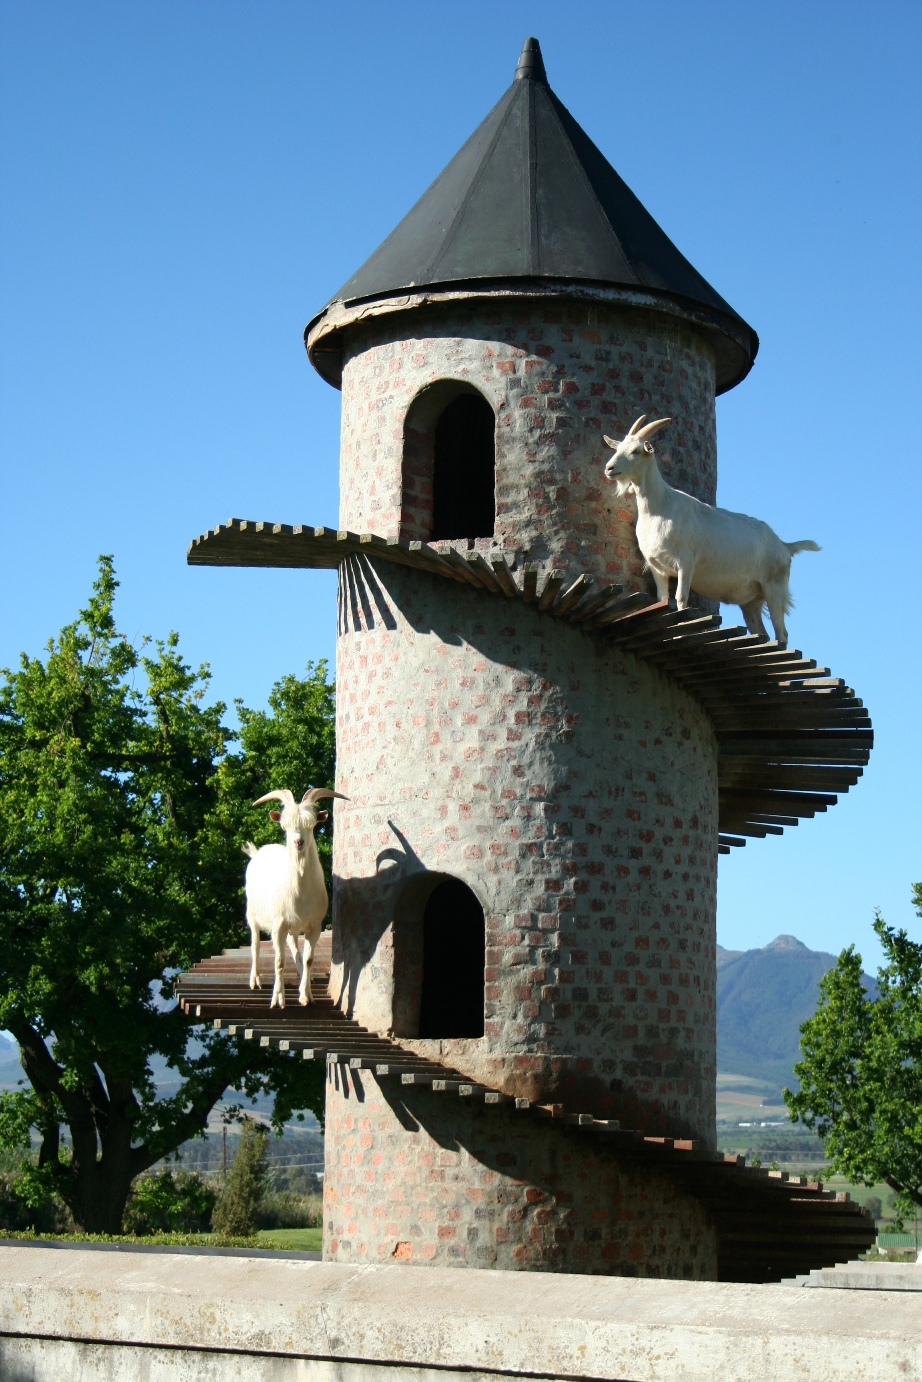 Goat tower wikipedia for Farmhouse tower